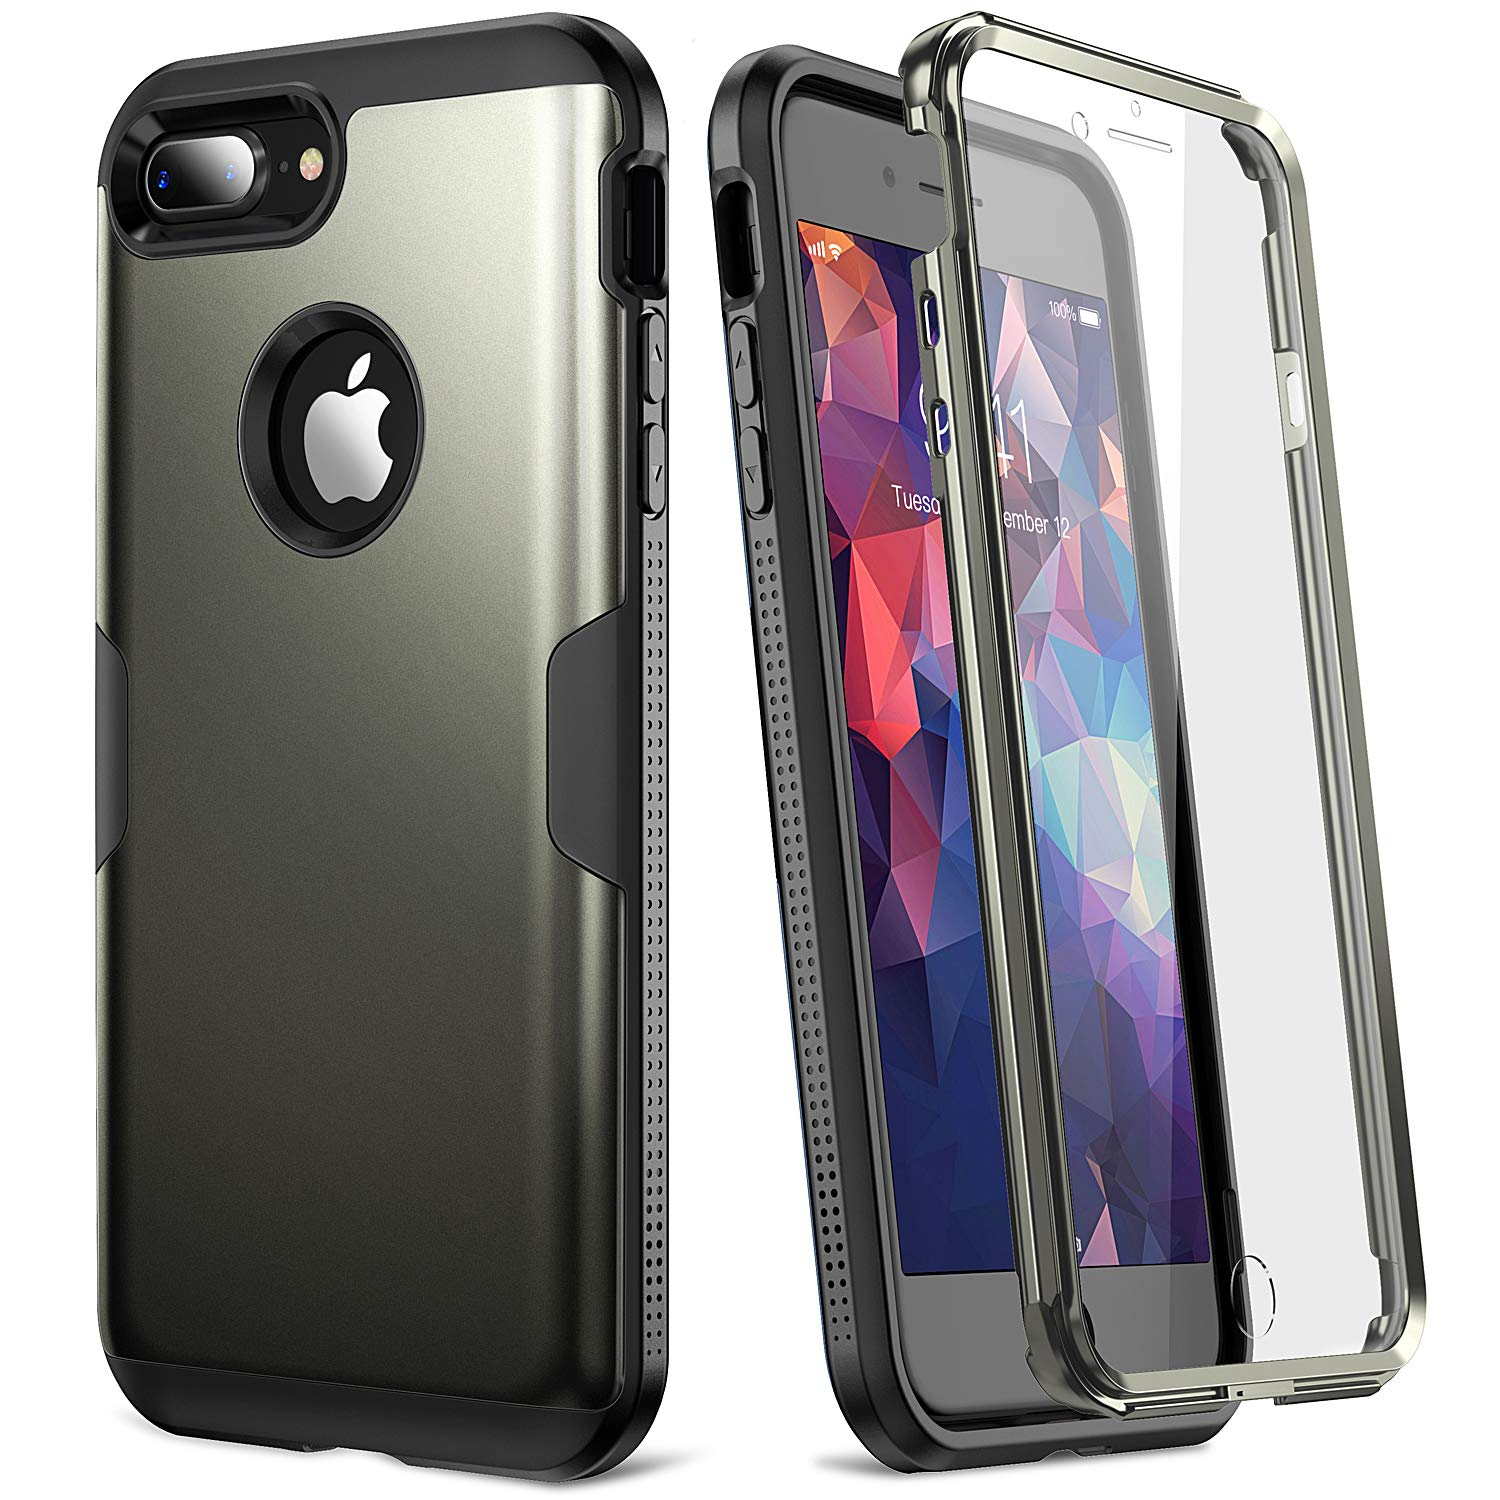 Full Body Rugged with Built-in Screen Protector Heavy Duty Protection Slim Fit Shockproof Cover for Apple iPhone 8 Plus YOUMAKER Case for iPhone 8 Plus /& iPhone 7 Plus 2017 5.5 Inch Black